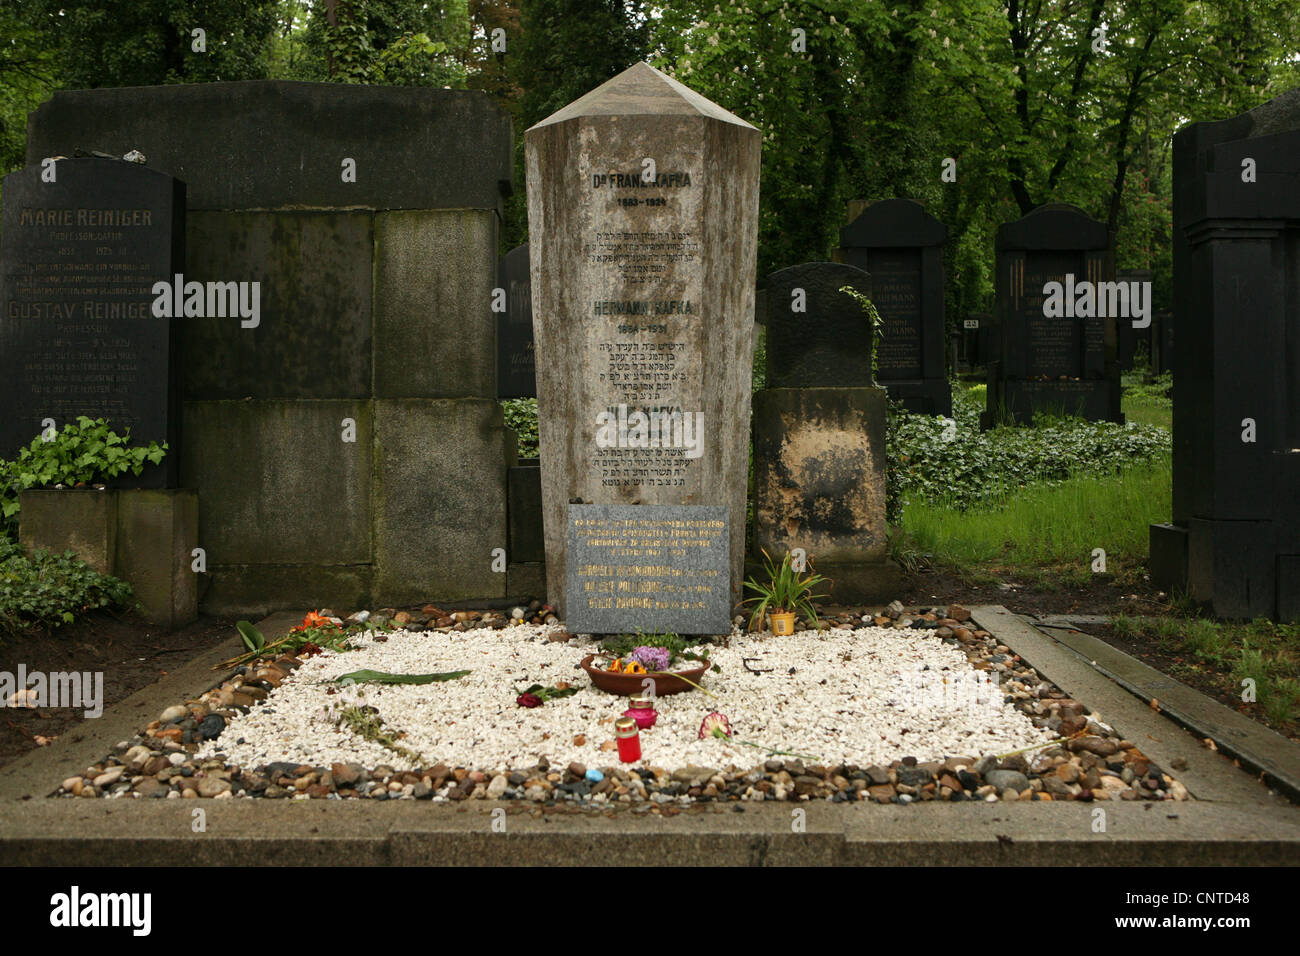 Grave of Franz Kafka at the New Jewish Cemetery in Prague, Czech Republic. - Stock Image